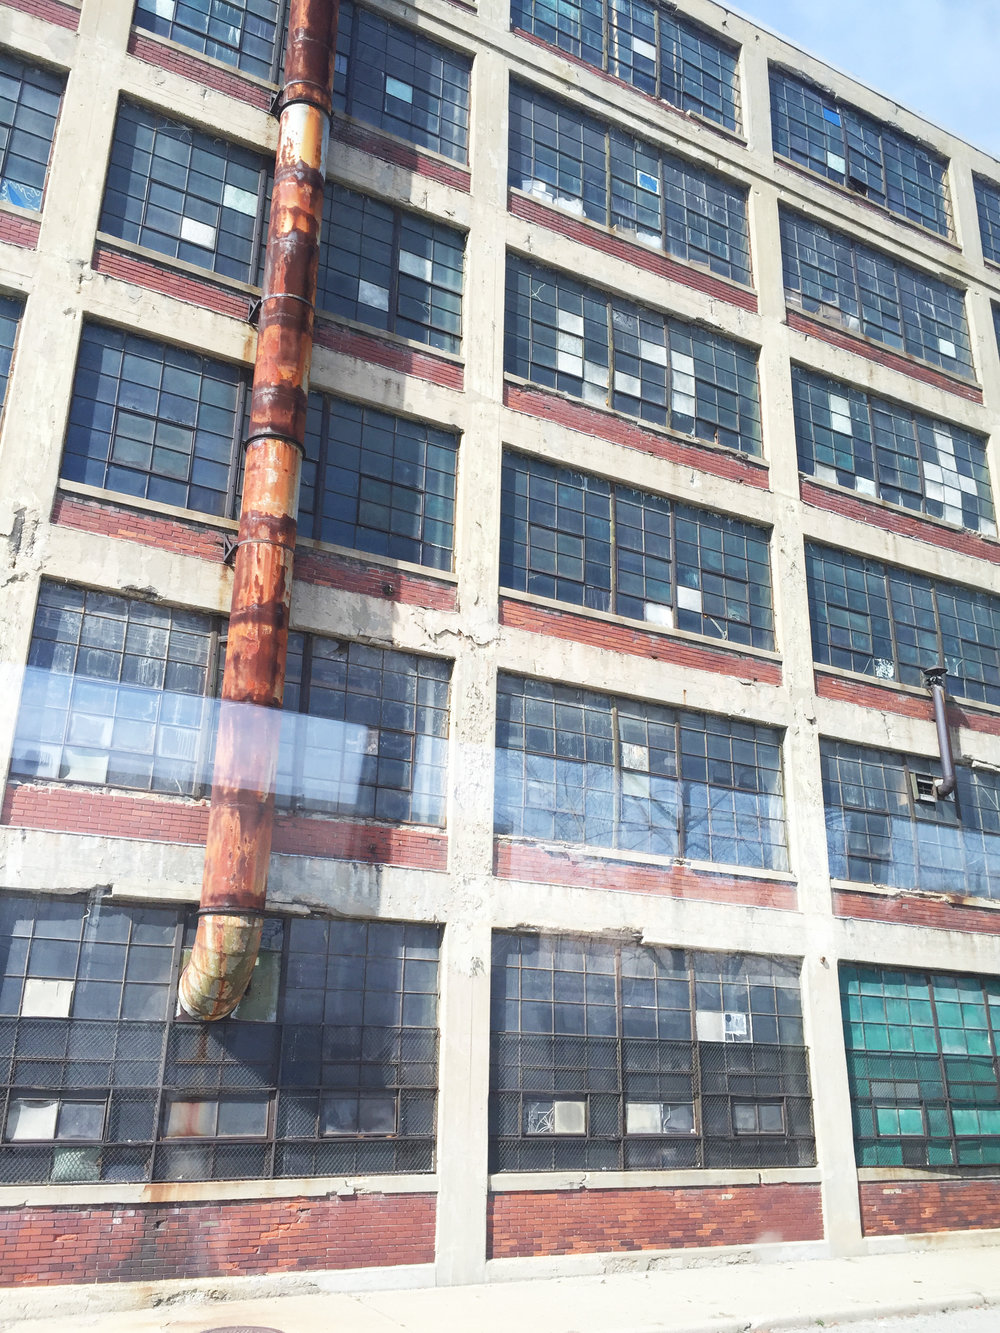 One of the saddest parts of our trip was seeing the old Ford Model T factory. Today it is completely abandoned and falling into disrepair. It really shows how Detroit, a once booming city, is now becoming forgotten and run down.